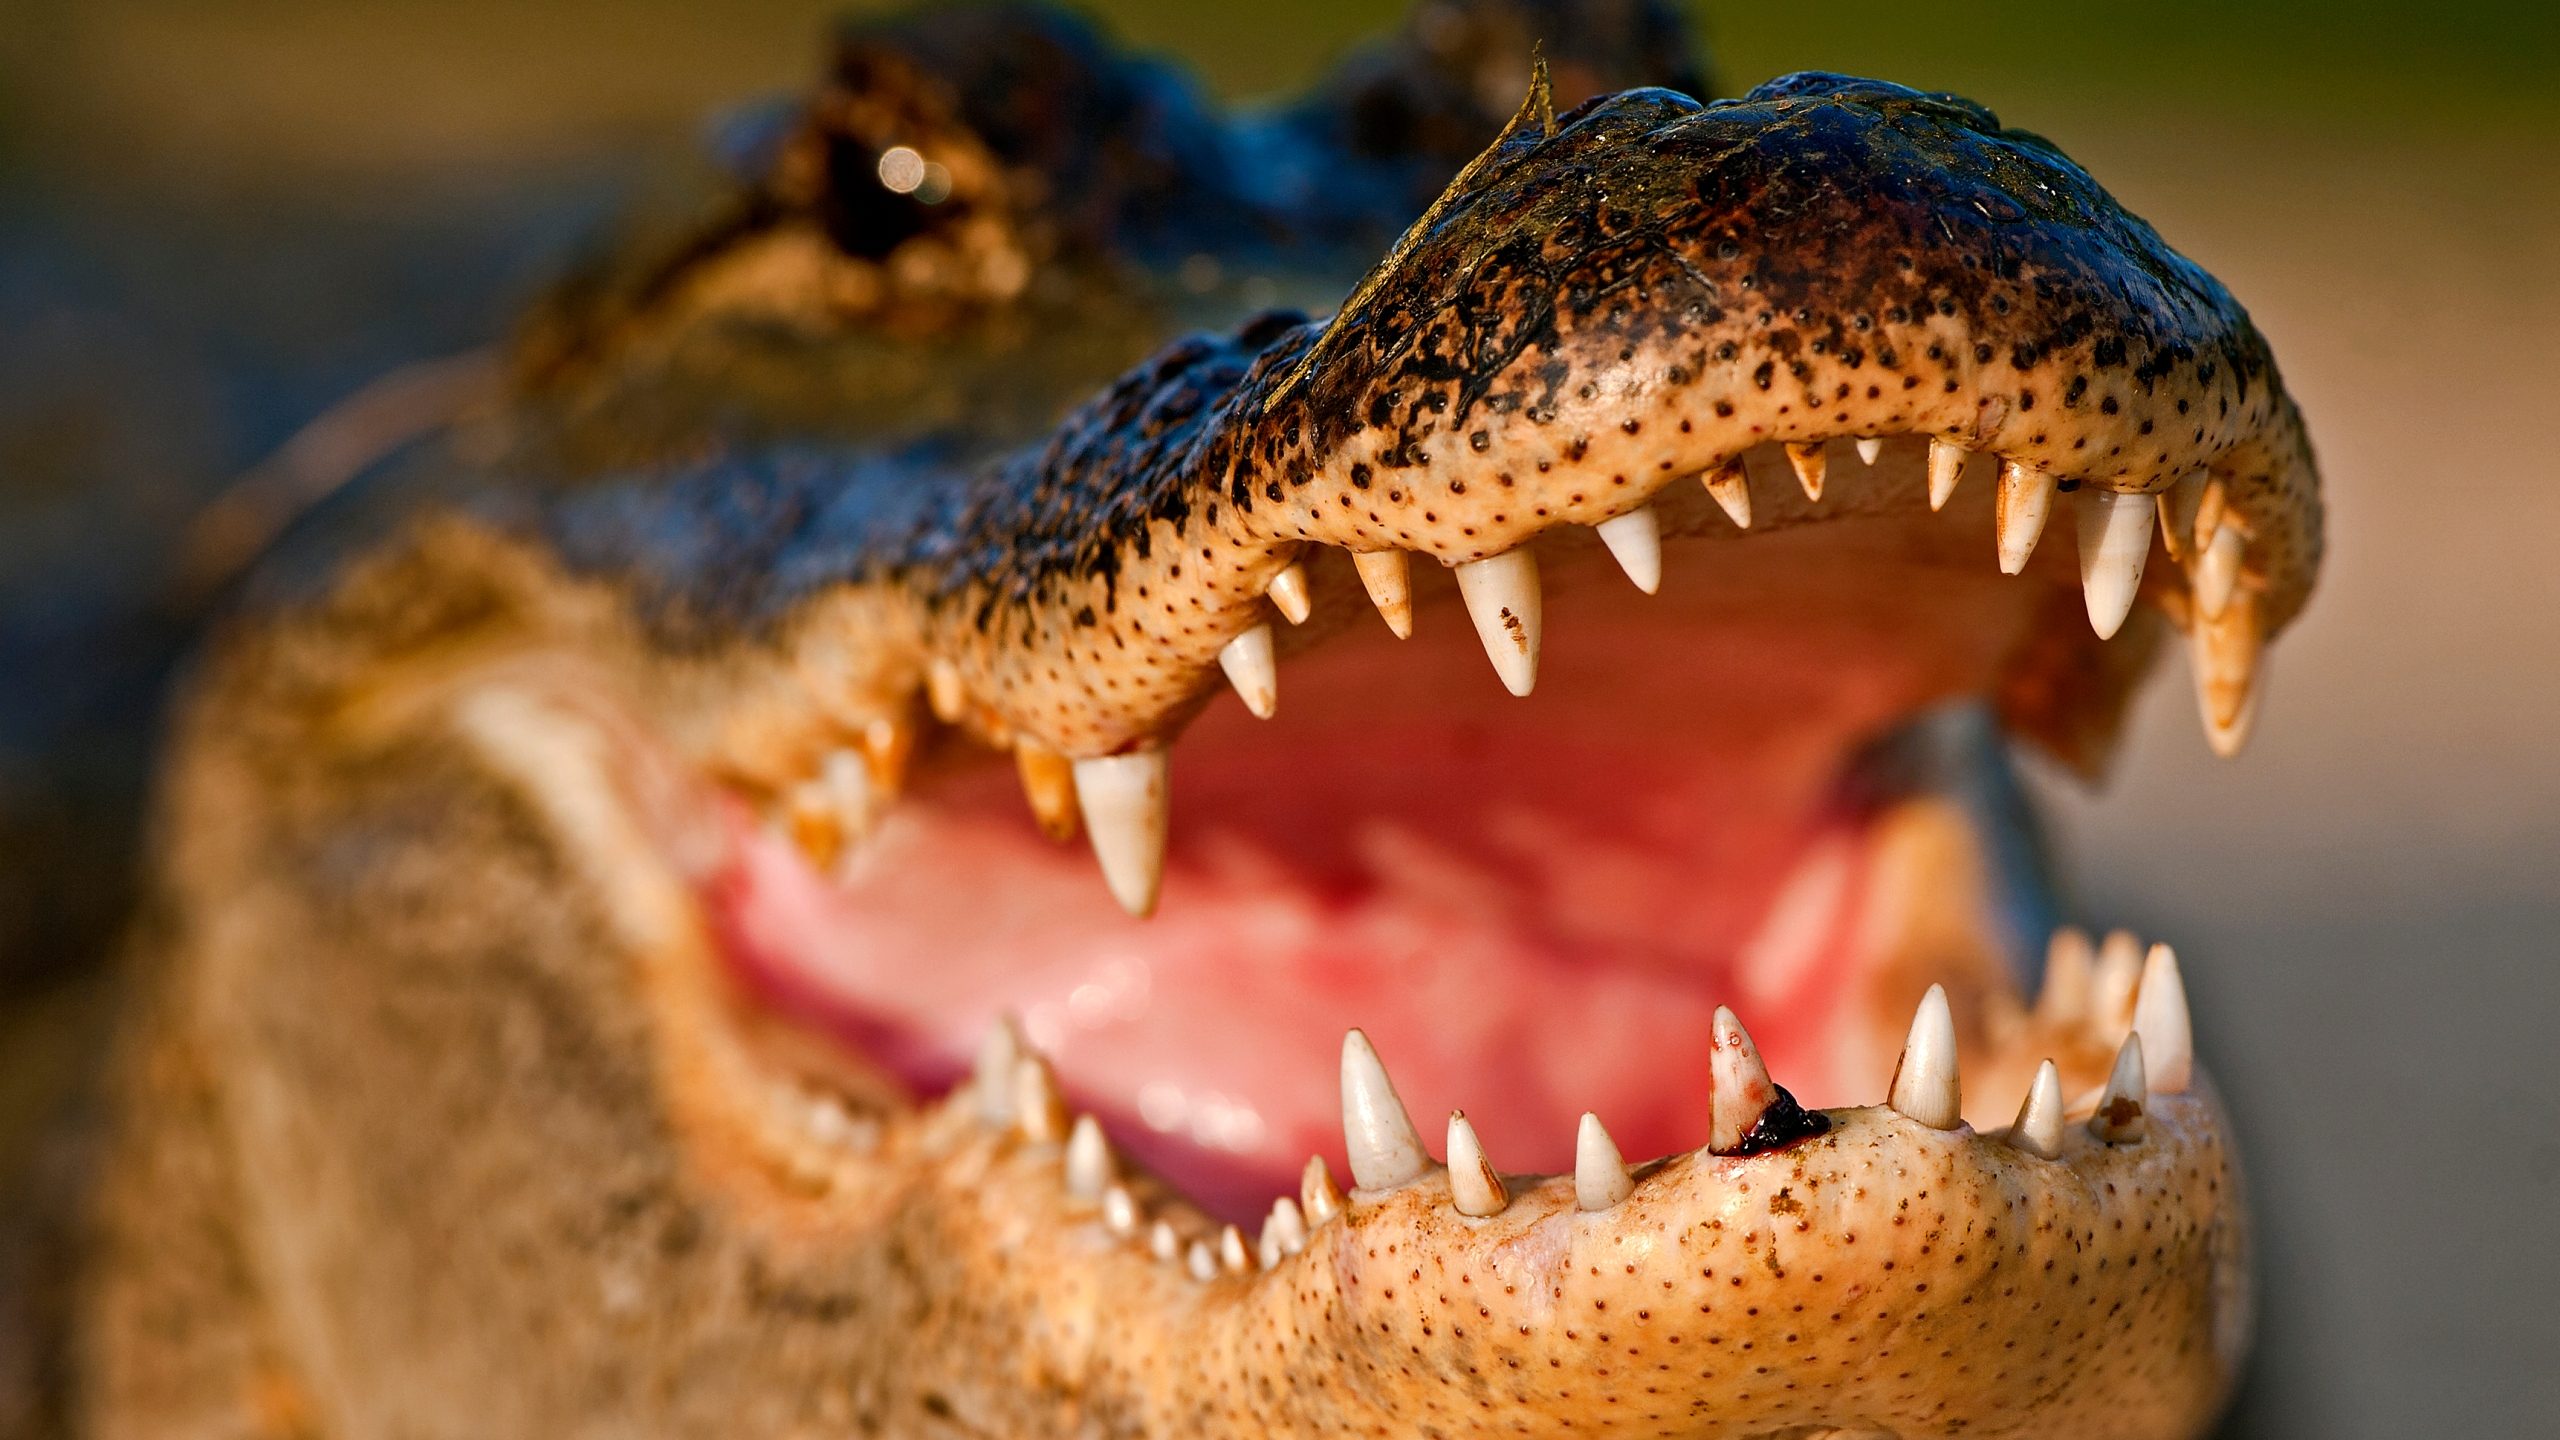 Alligator (Stock image/Getty)